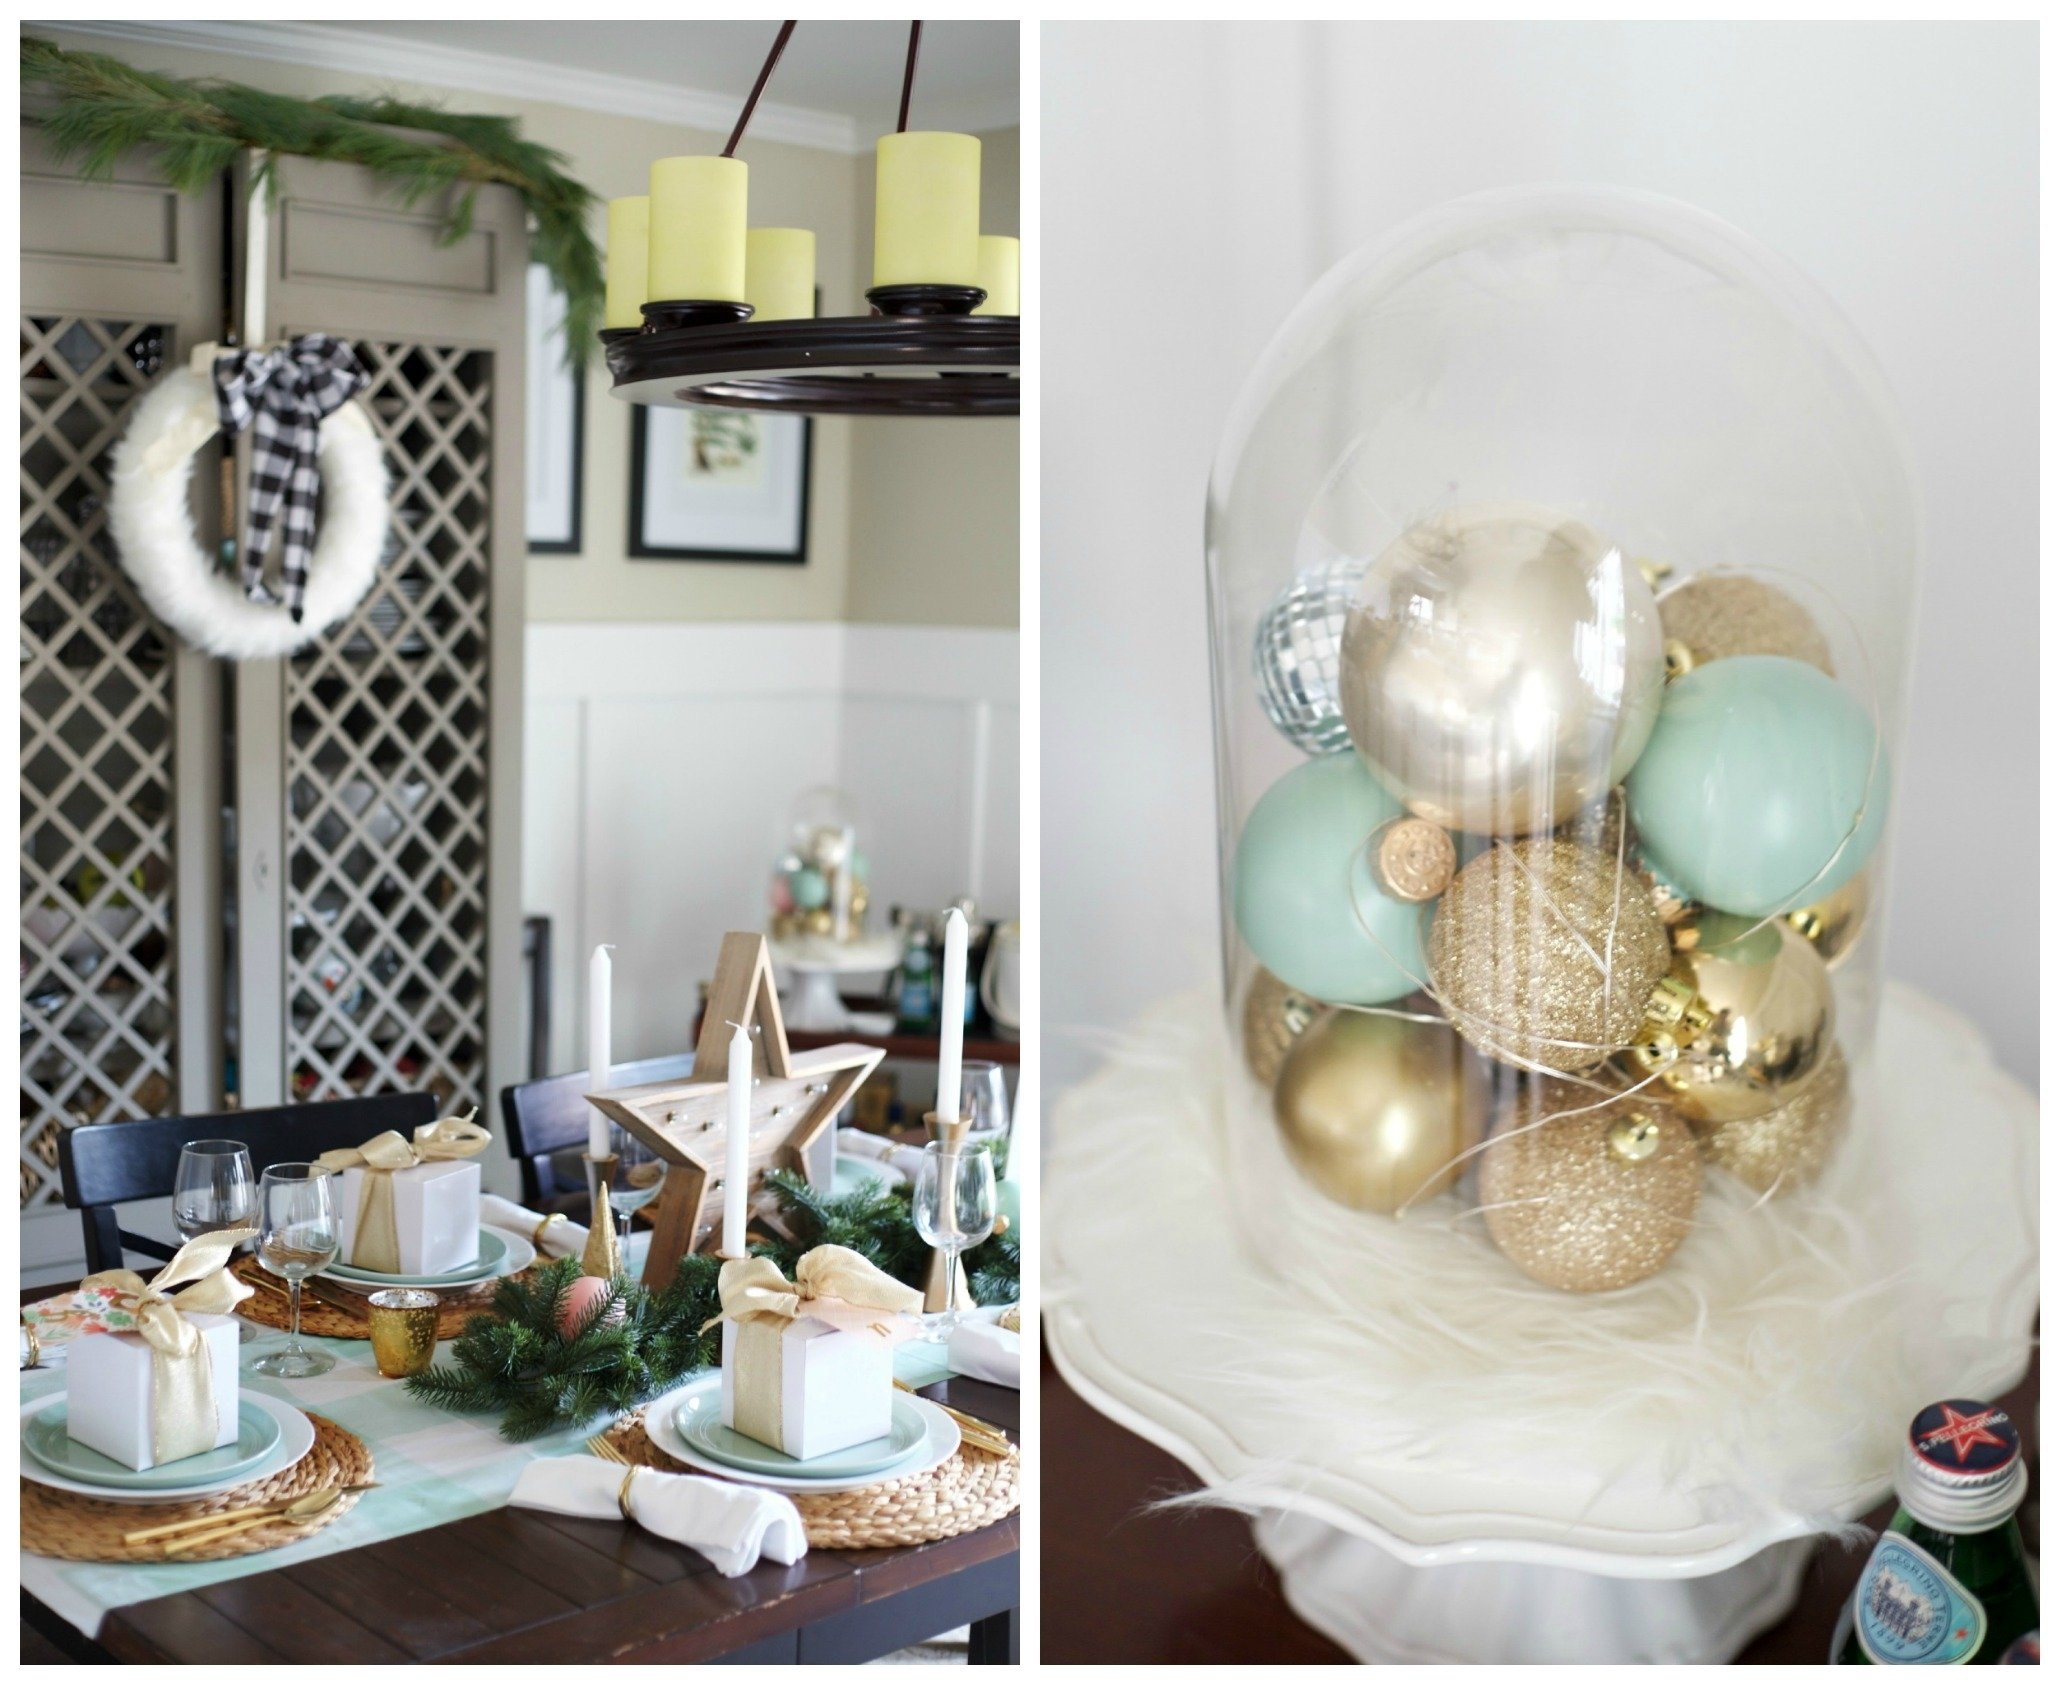 10 Ideal Christmas Decorating Ideas On A Budget beautiful christmas decoration ideas godfather style mesmerizing 2 2021